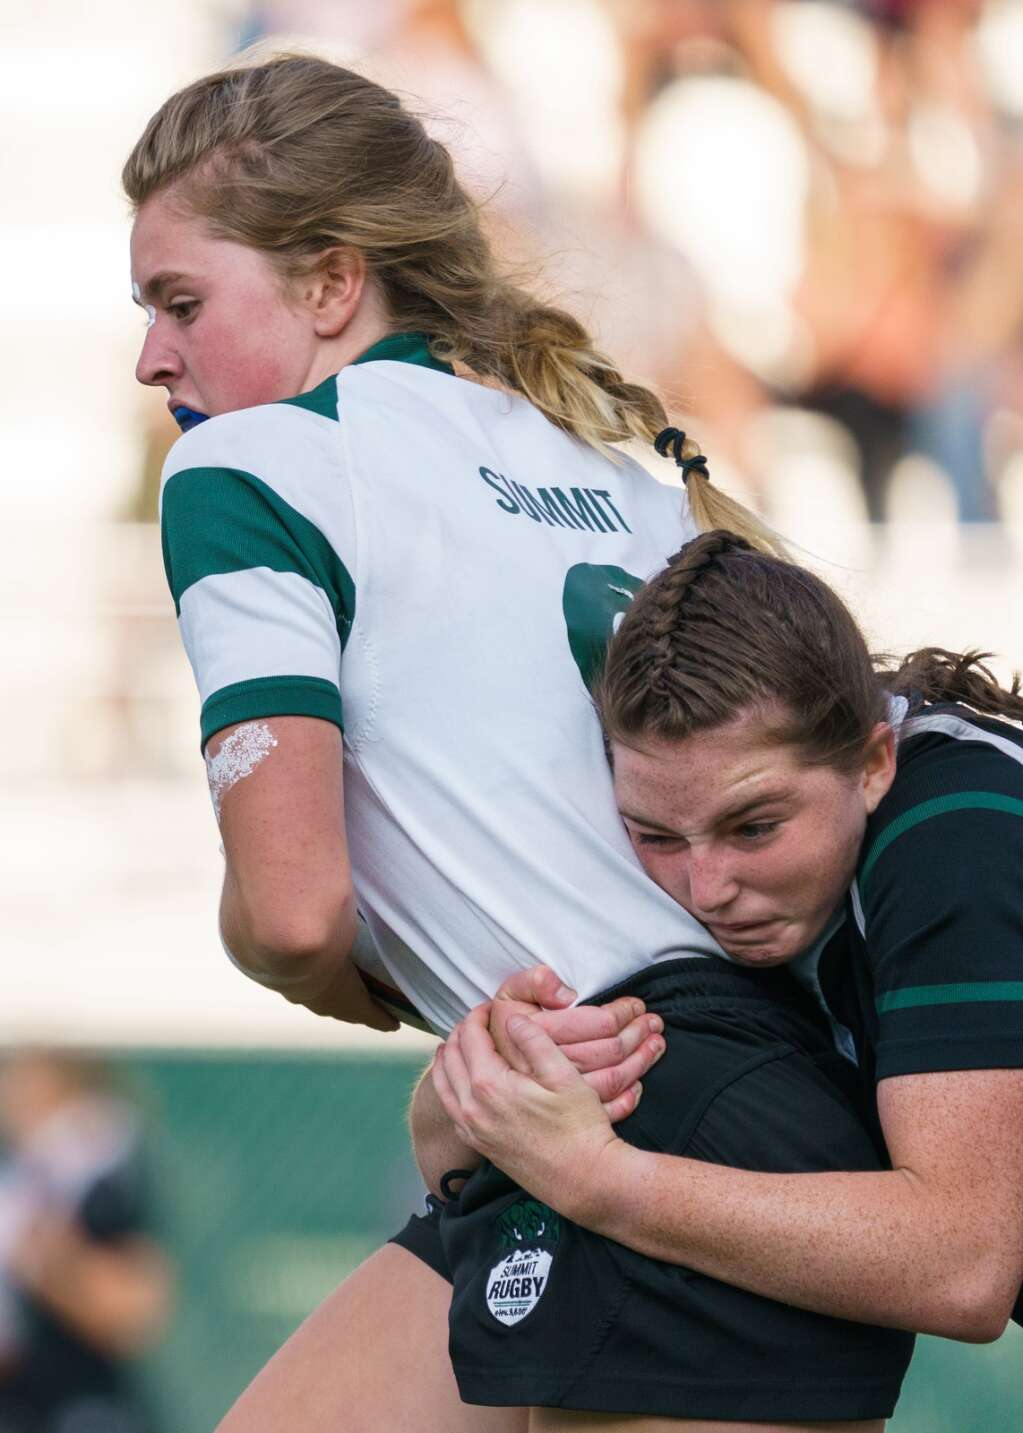 Summit High School sophomore Regan Jackson tackles sophomore Lucia Hoffman during the Green-White rugby scrimmage held at Tiger Stadium in Breckenridge on Thursday, Sept. 2. | John Hanson/For the Summit Daily News